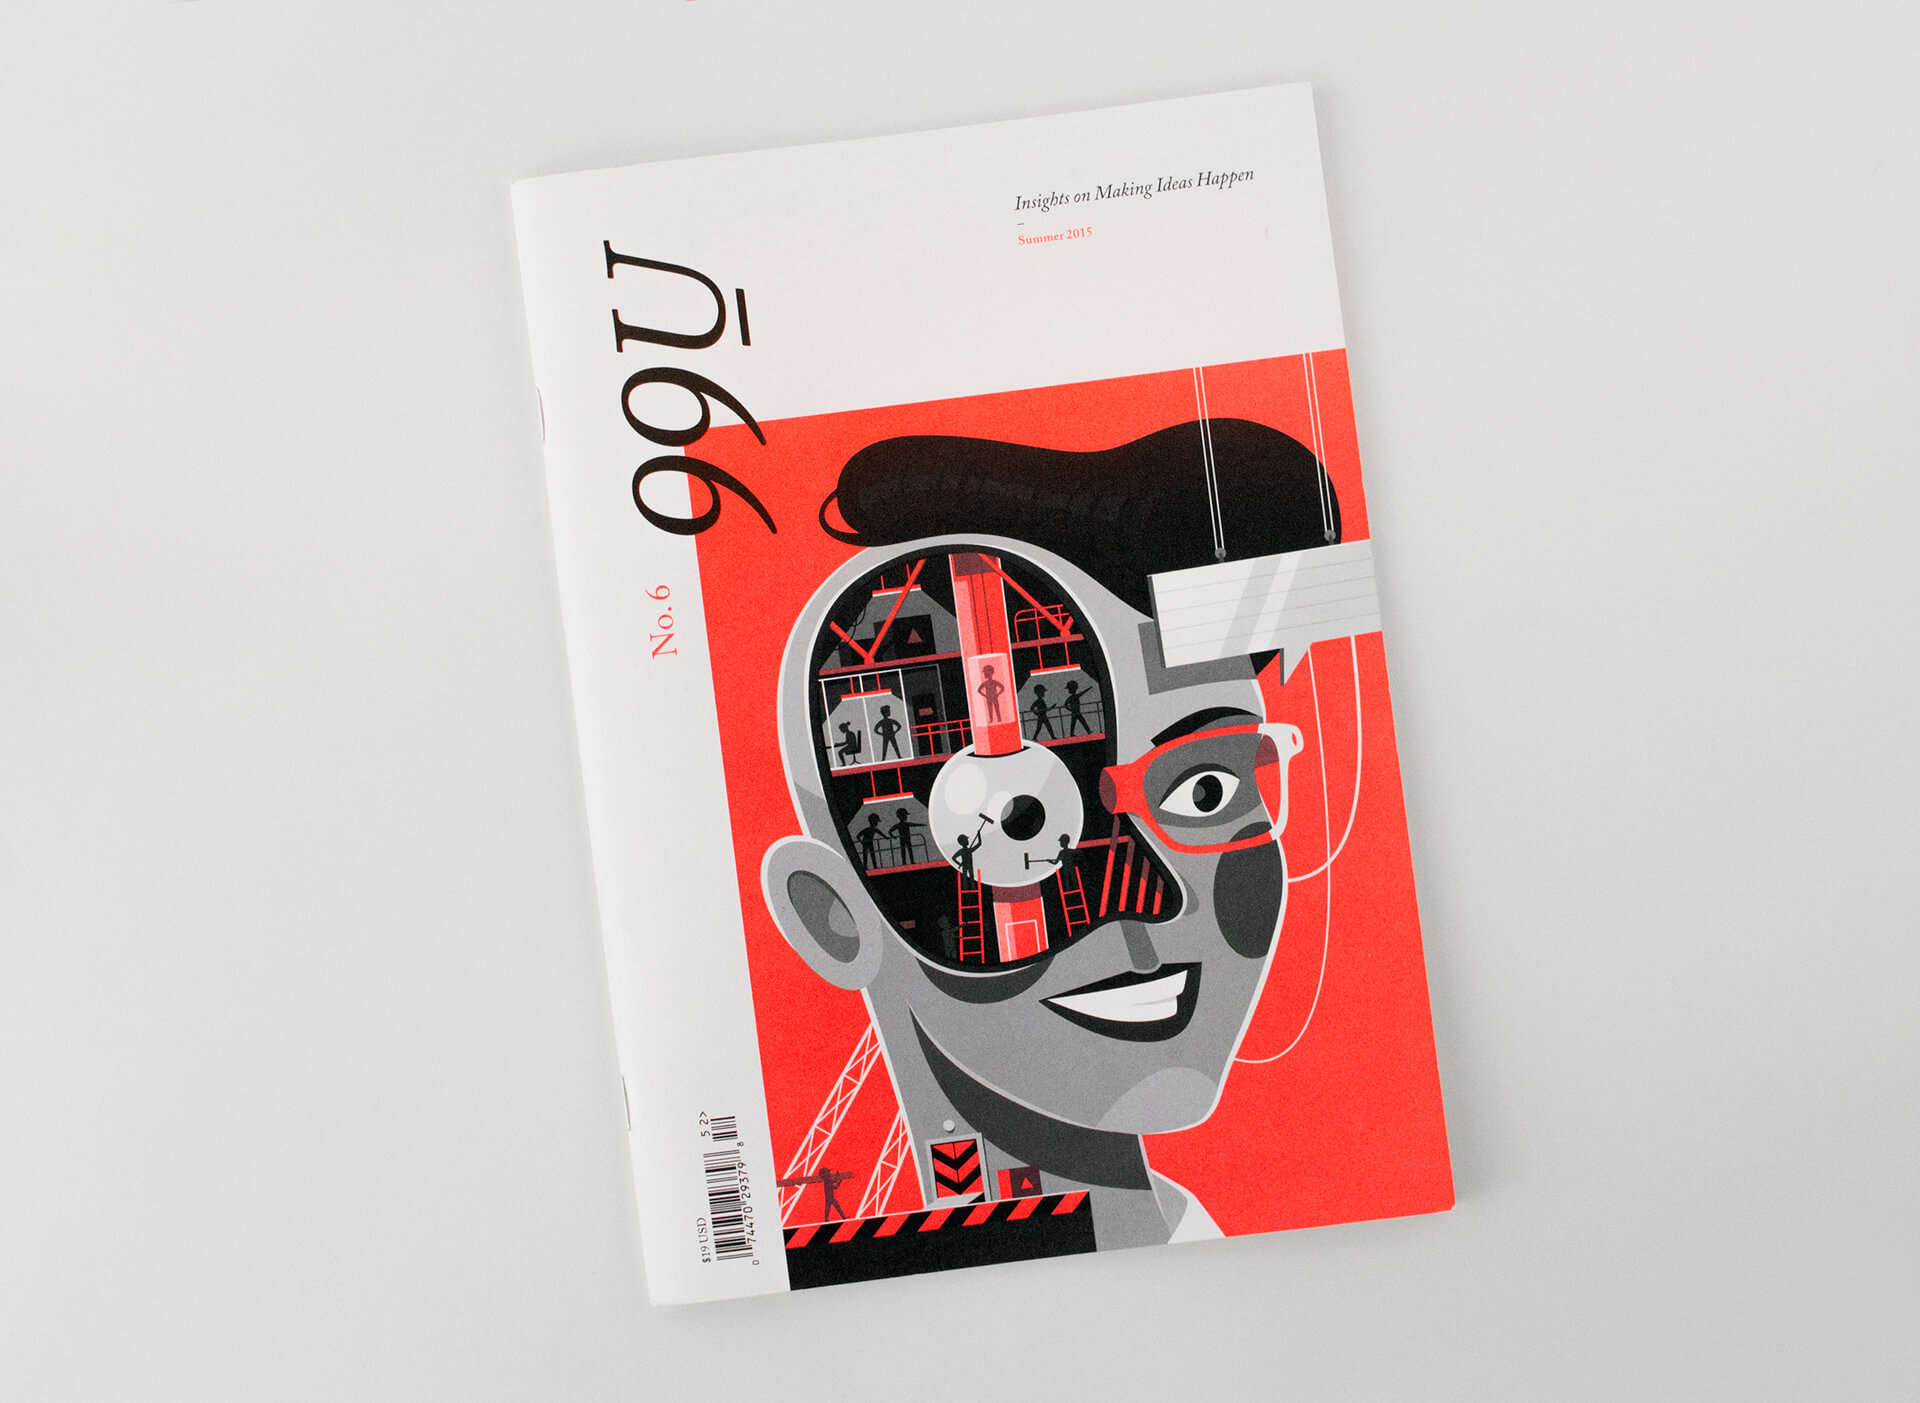 99U-Quarterly-Issue-6-01